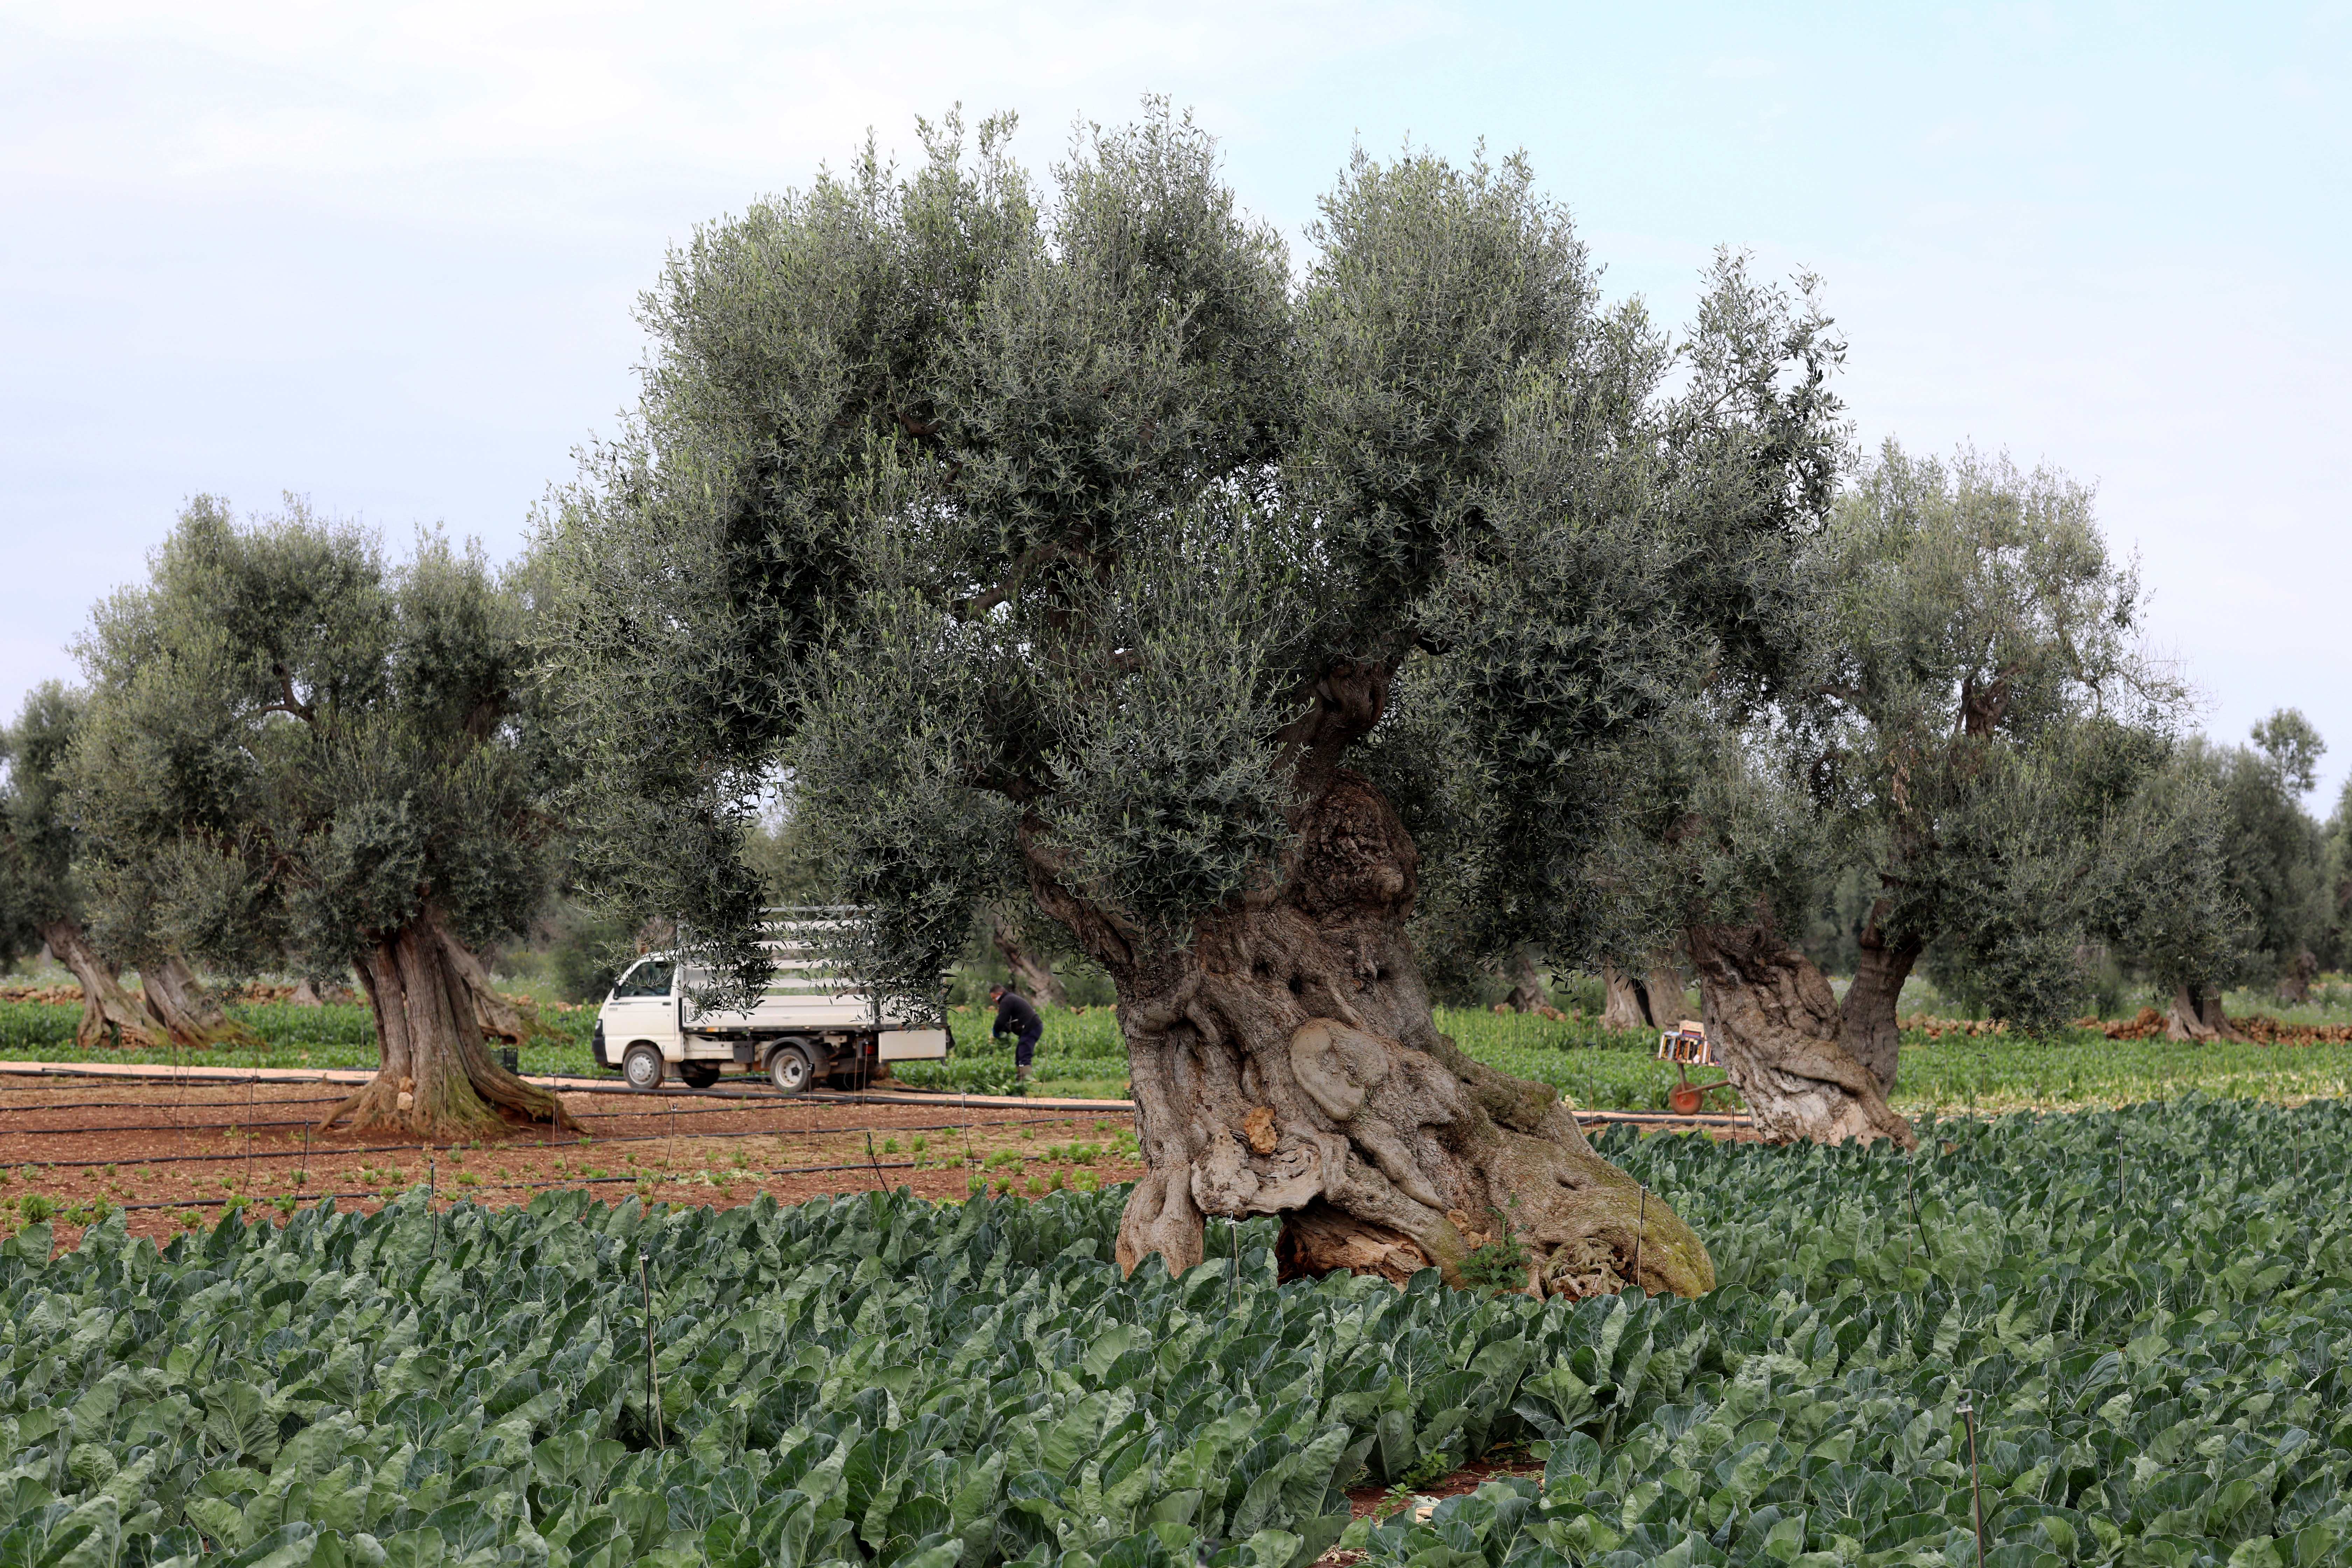 Hundred years old olive trees are seen at the Piana degli Oliveti on April 10, 2019 in Fasano, Italy. (Photo by Marco Di Lauro/Getty Images)